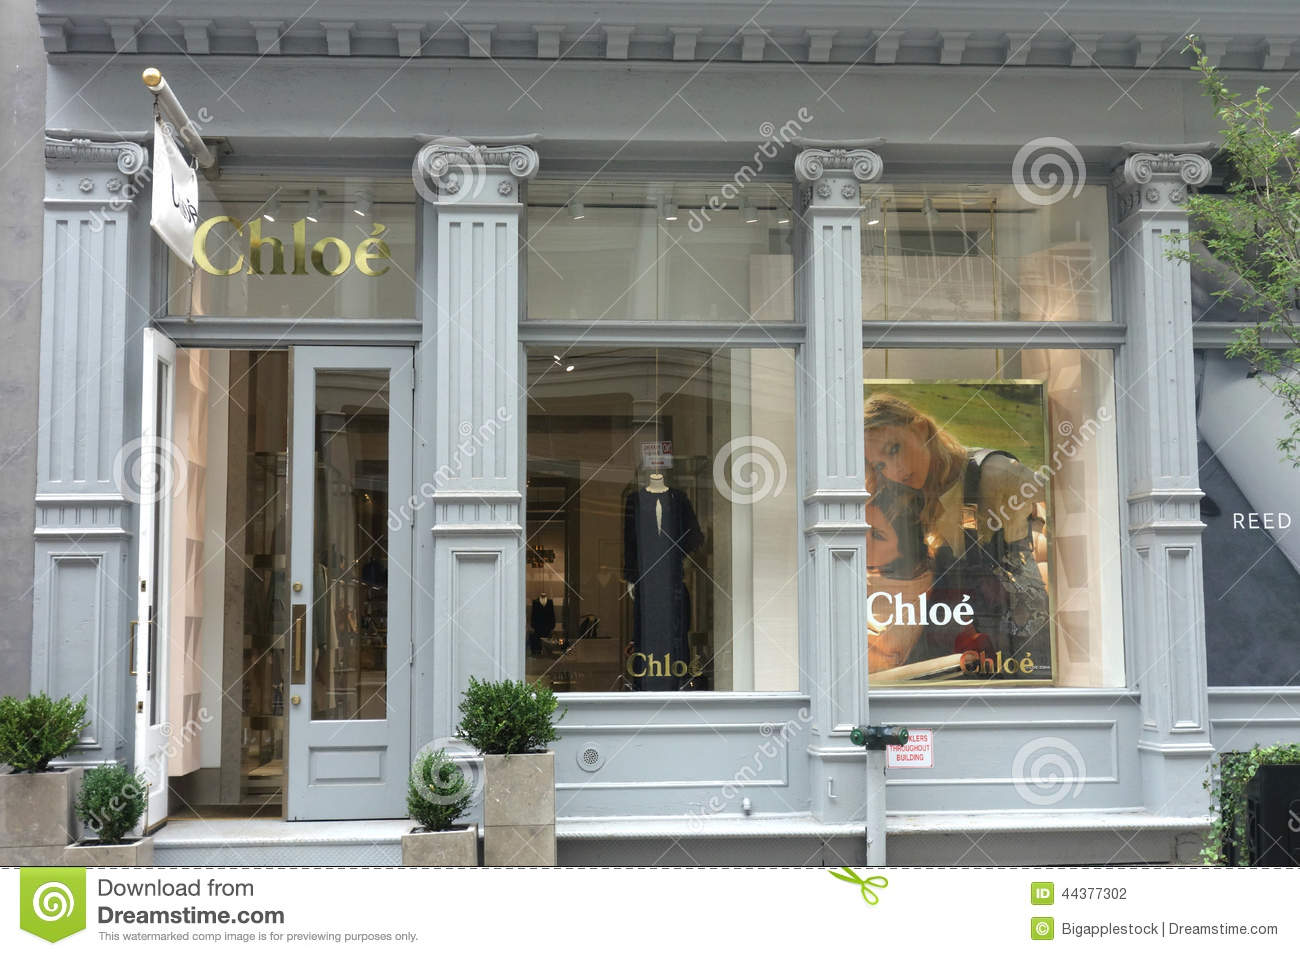 Chloé editorial photography. Image of shopping c312a8f02c70